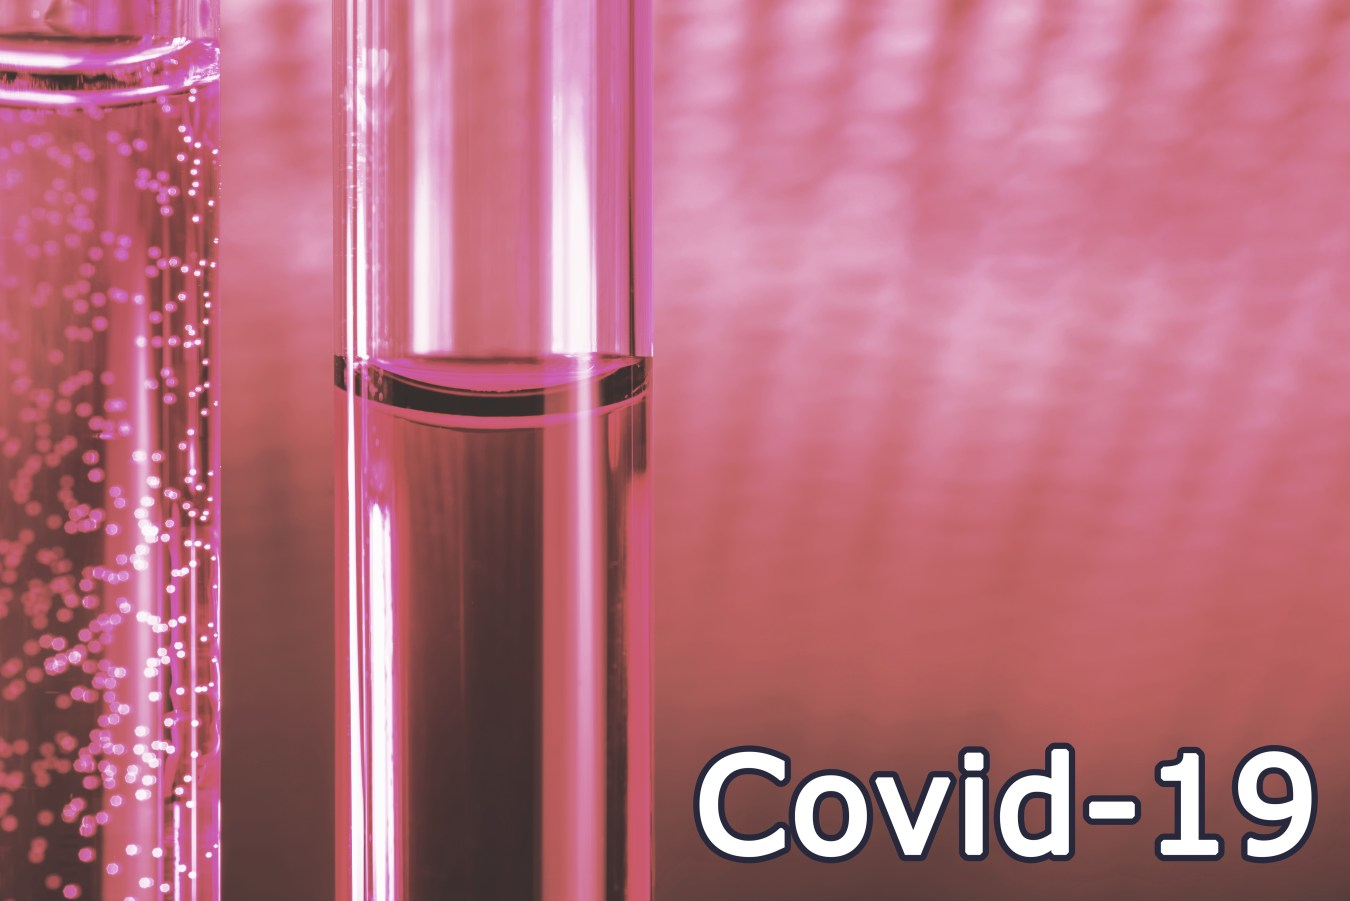 Covid-19. Red liquid vaccine in glass tubes.. Cases of COVID-19 illustration. Image credit: Ivan Uralsky. vaccine hesitancy concept. Also to illustrate article re: emergency use authorisation. Oxford/AstraZeneca vaccine.